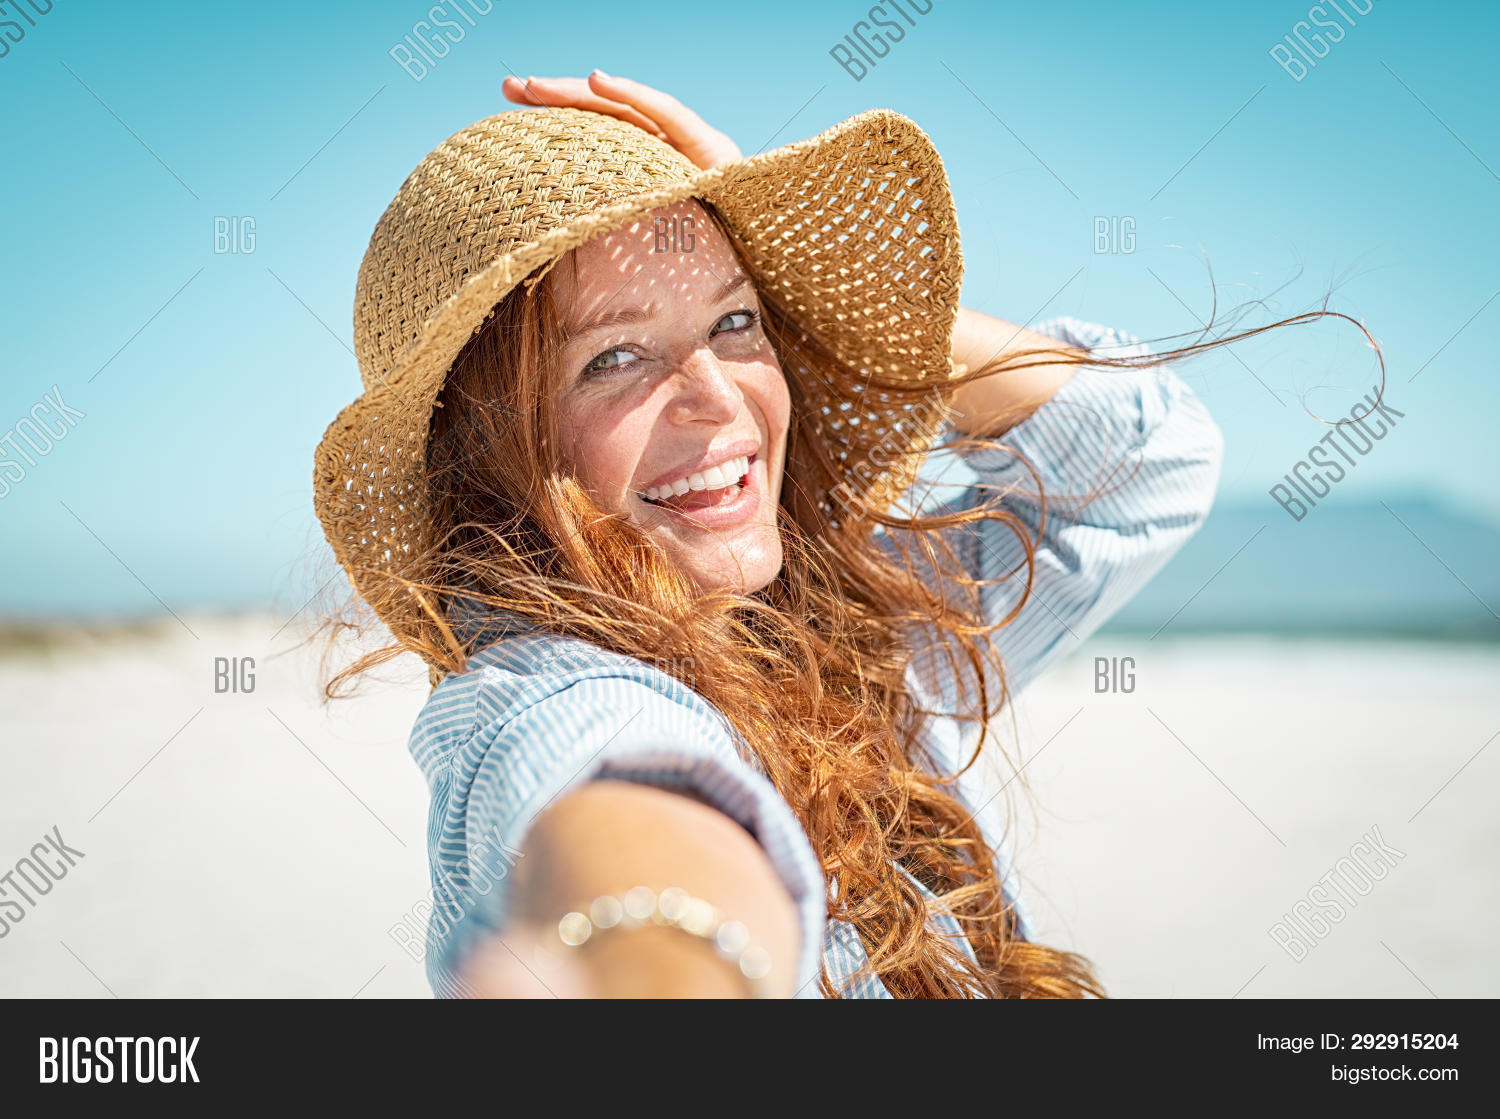 40 years,beach,beautiful,beauty,care,carefree,caucasian,cheerful,closeup,enjoy,face,freckles,girl,hair,happy,hat,having fun,holiday,joyful,laughing,lifestyle,looking,looking at camera,mature,mid adult woman,middle aged woman,natural,outdoor,people,portrait,protection,red,red hair woman,sea,skin,skin care,skincare,smile,straw,straw hat,summer,sun,sunbath,sunscreen,toothy smile,travel,vacation,wind,woman,young